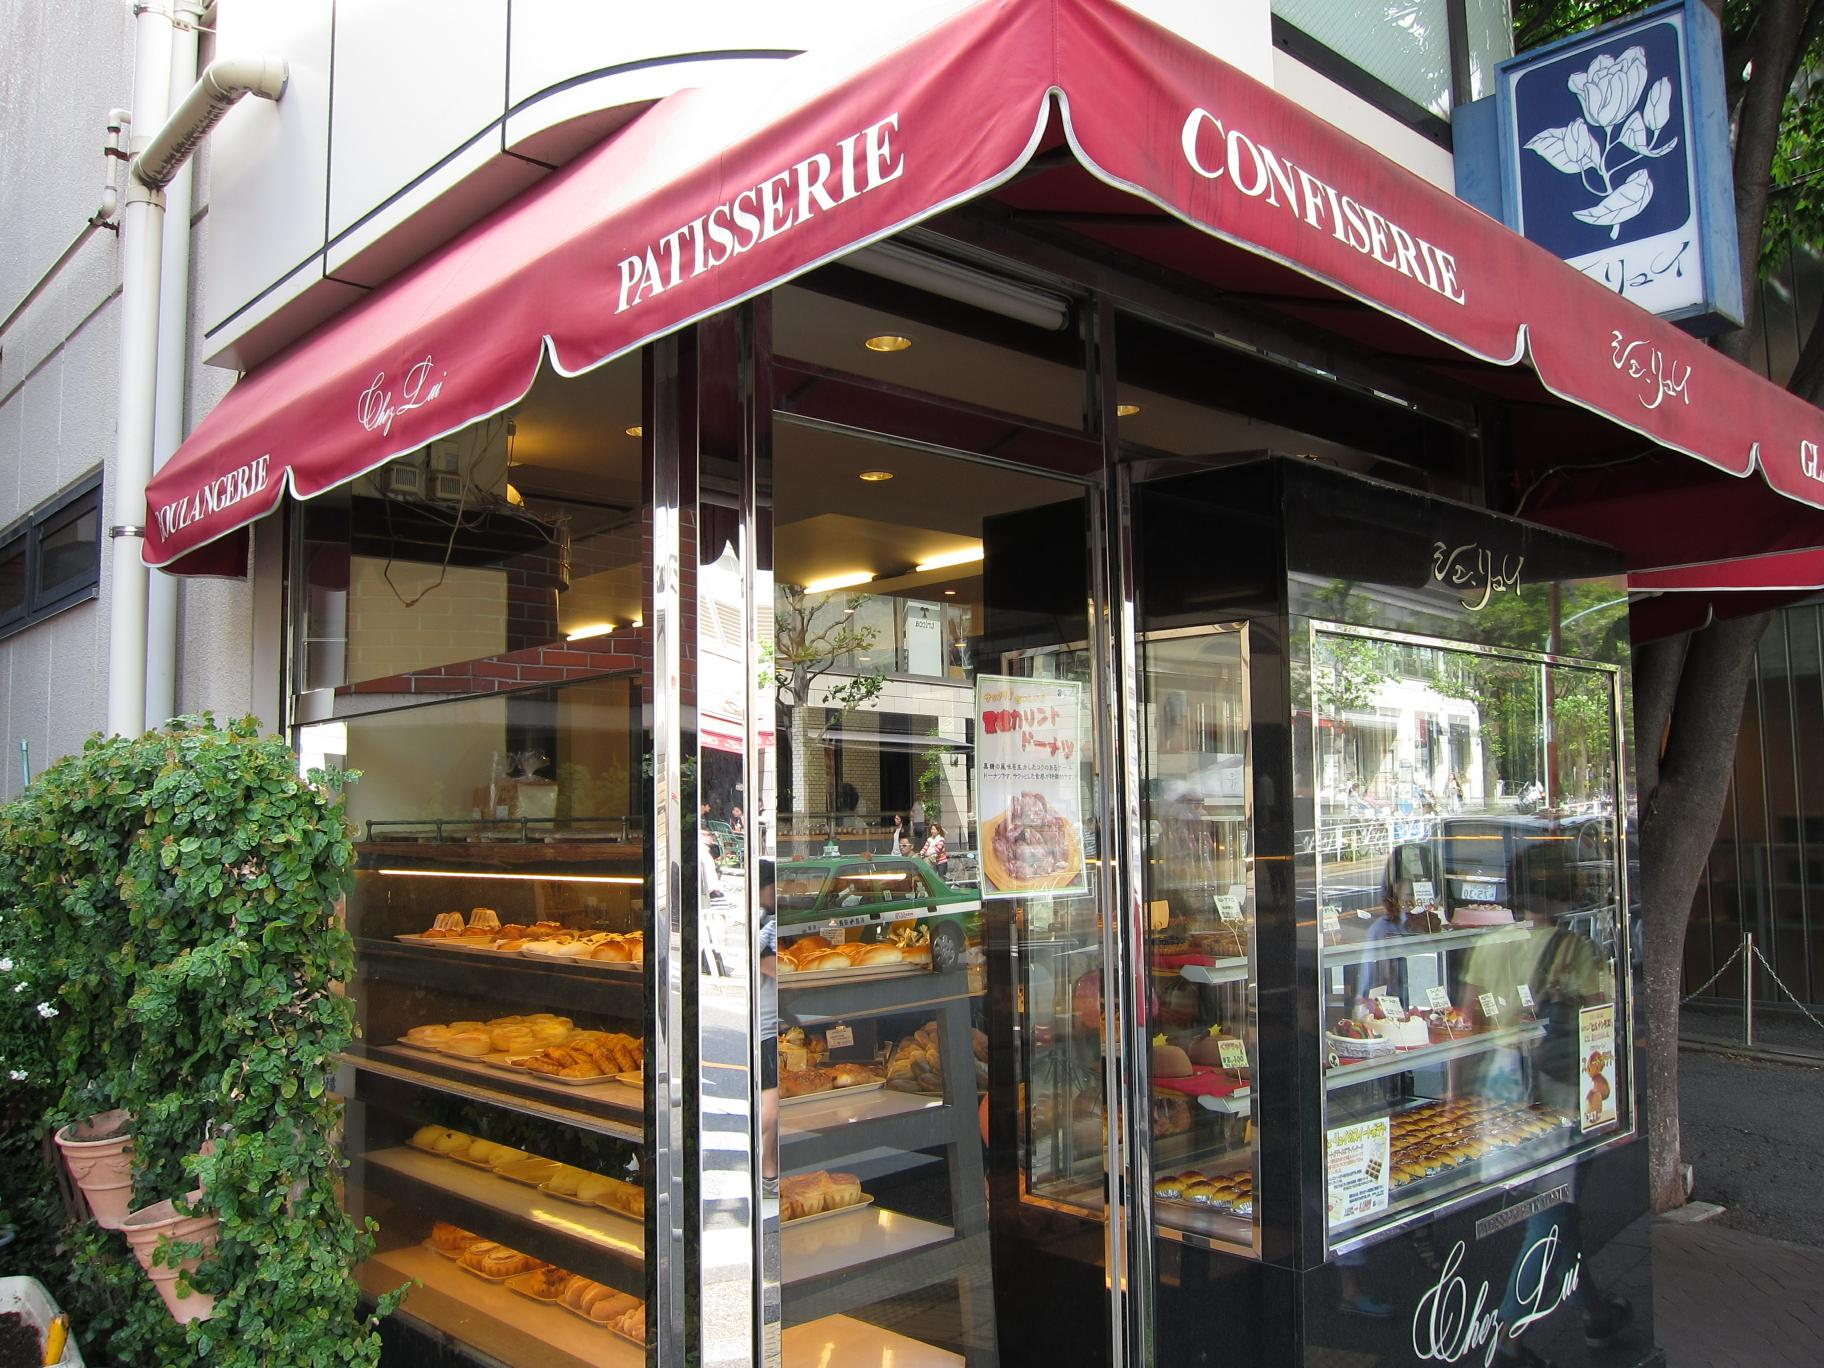 Nothing like an authentic Parisian Boulangerie! (This one happens to be in Tokyo, but they're are quite a few in Paris as well...)